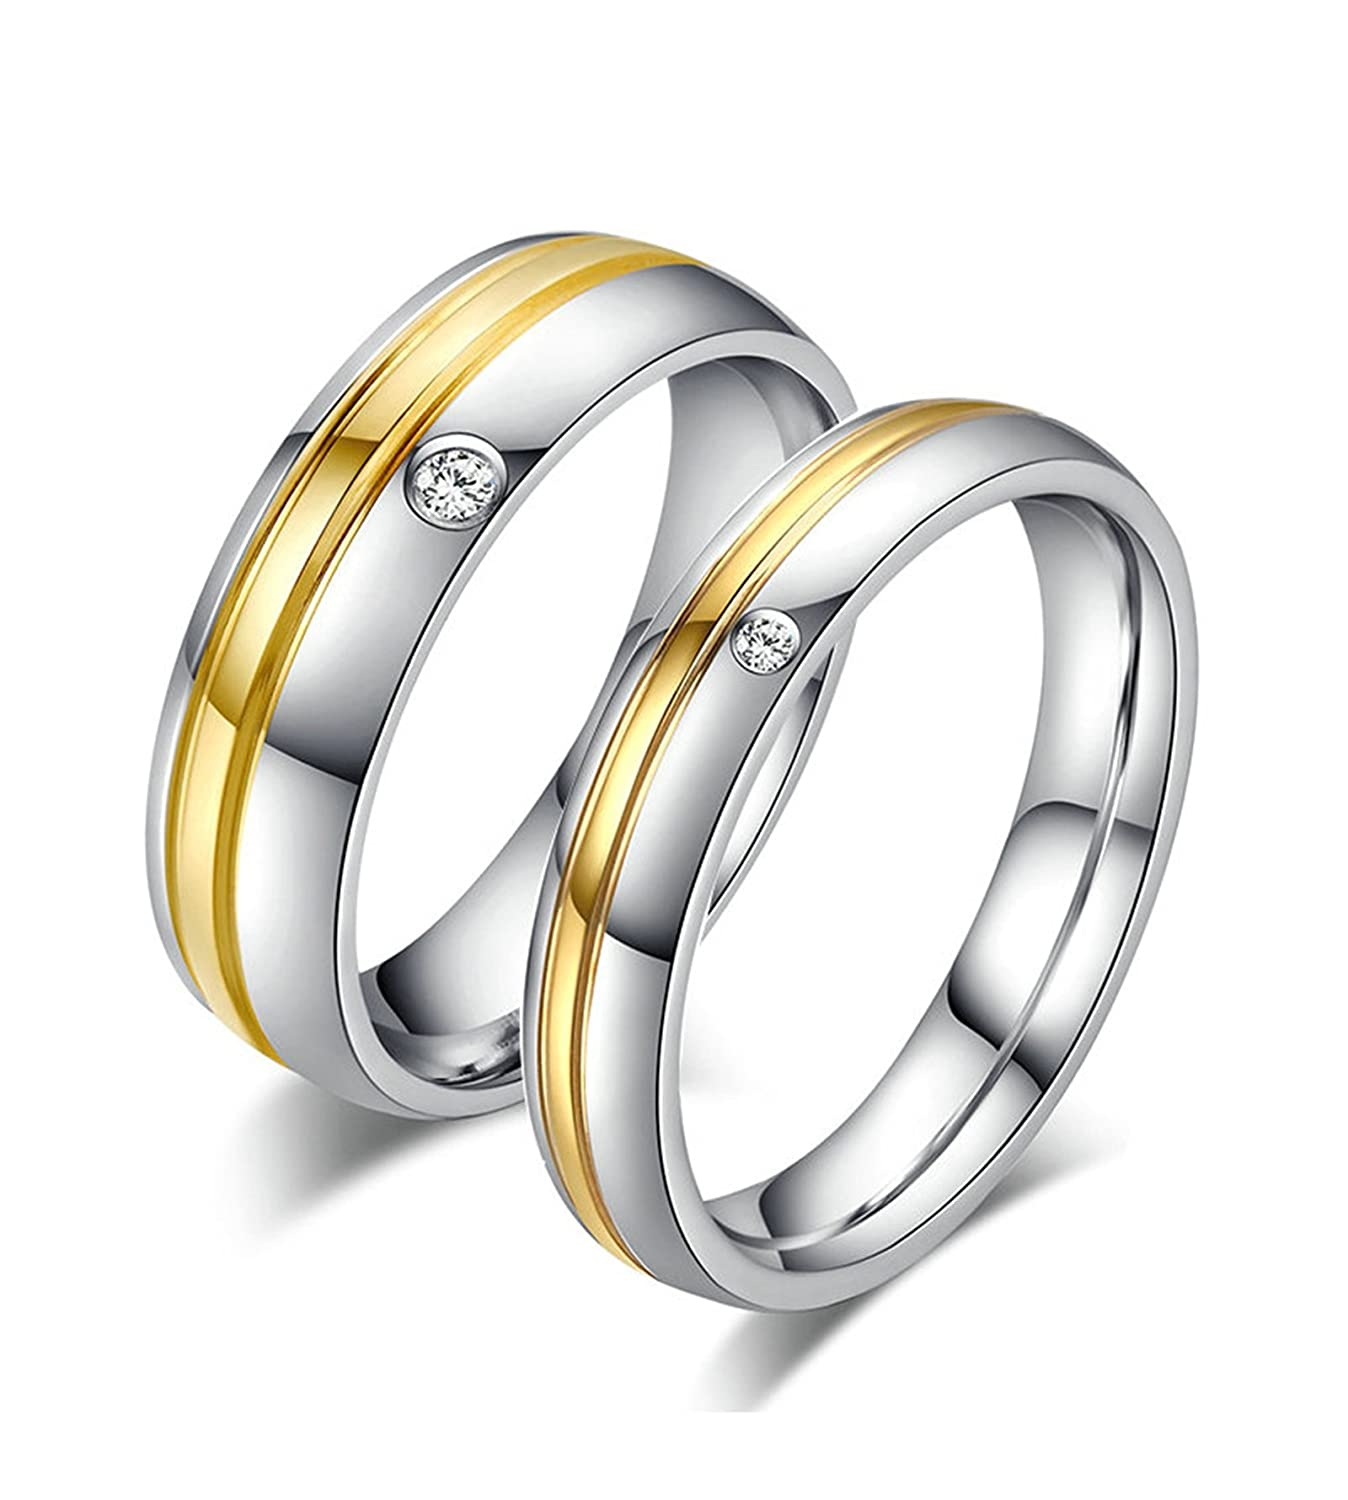 Beydodo 1PCS Stainless Steel Ring Size 5-12 Cubic Zirconia Round 4//6MM Width Couples Ring